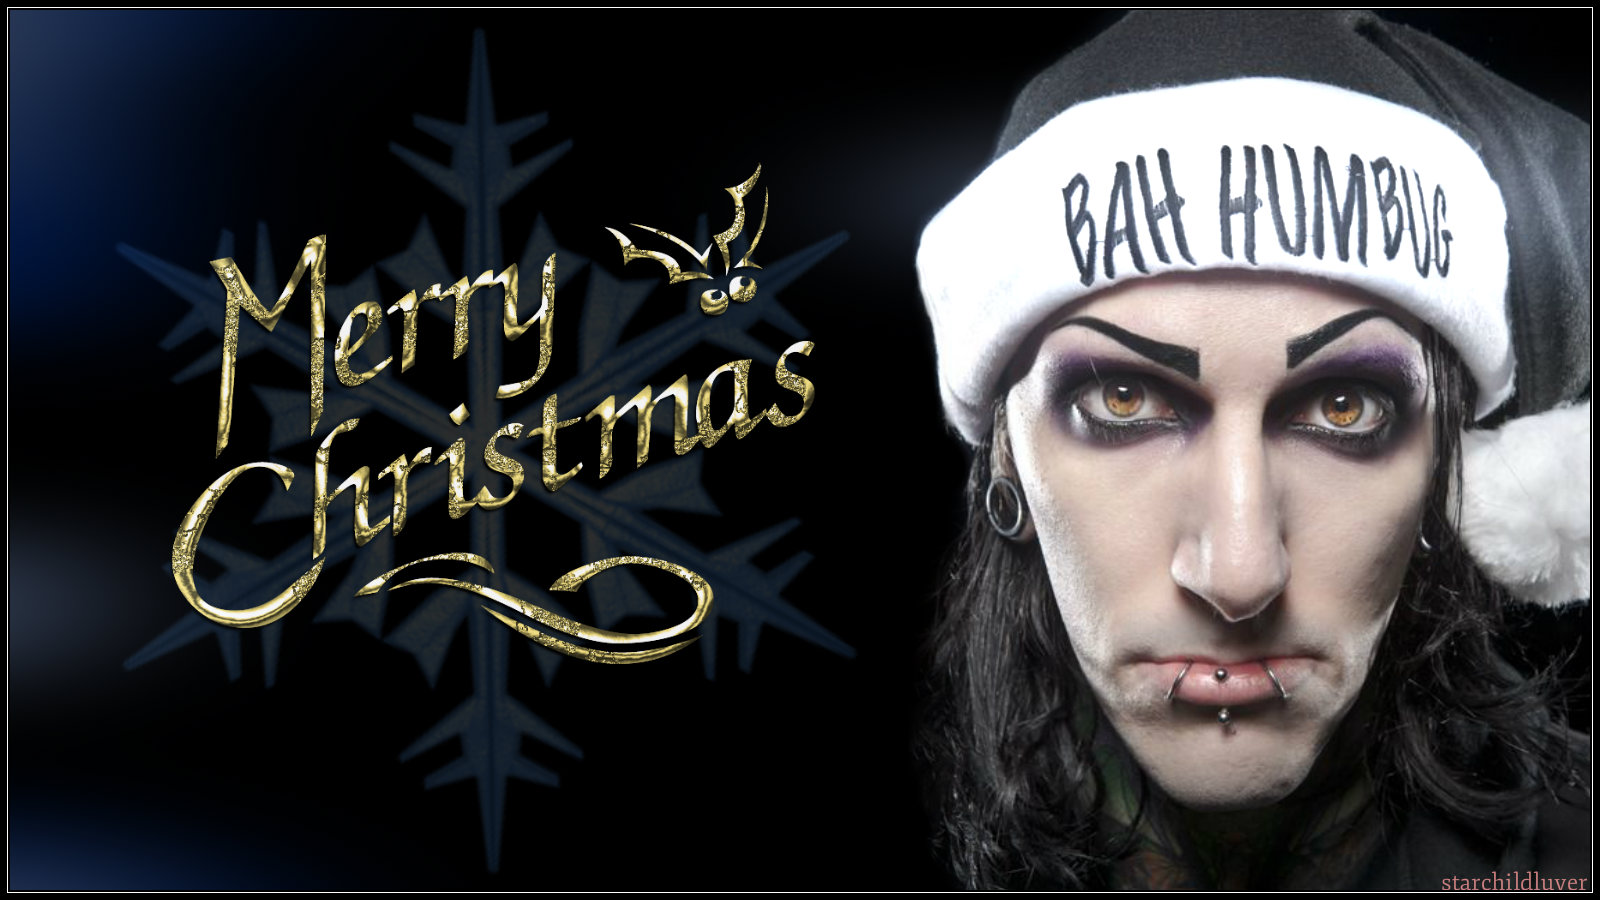 bah humbug and merry christmas motionless in white